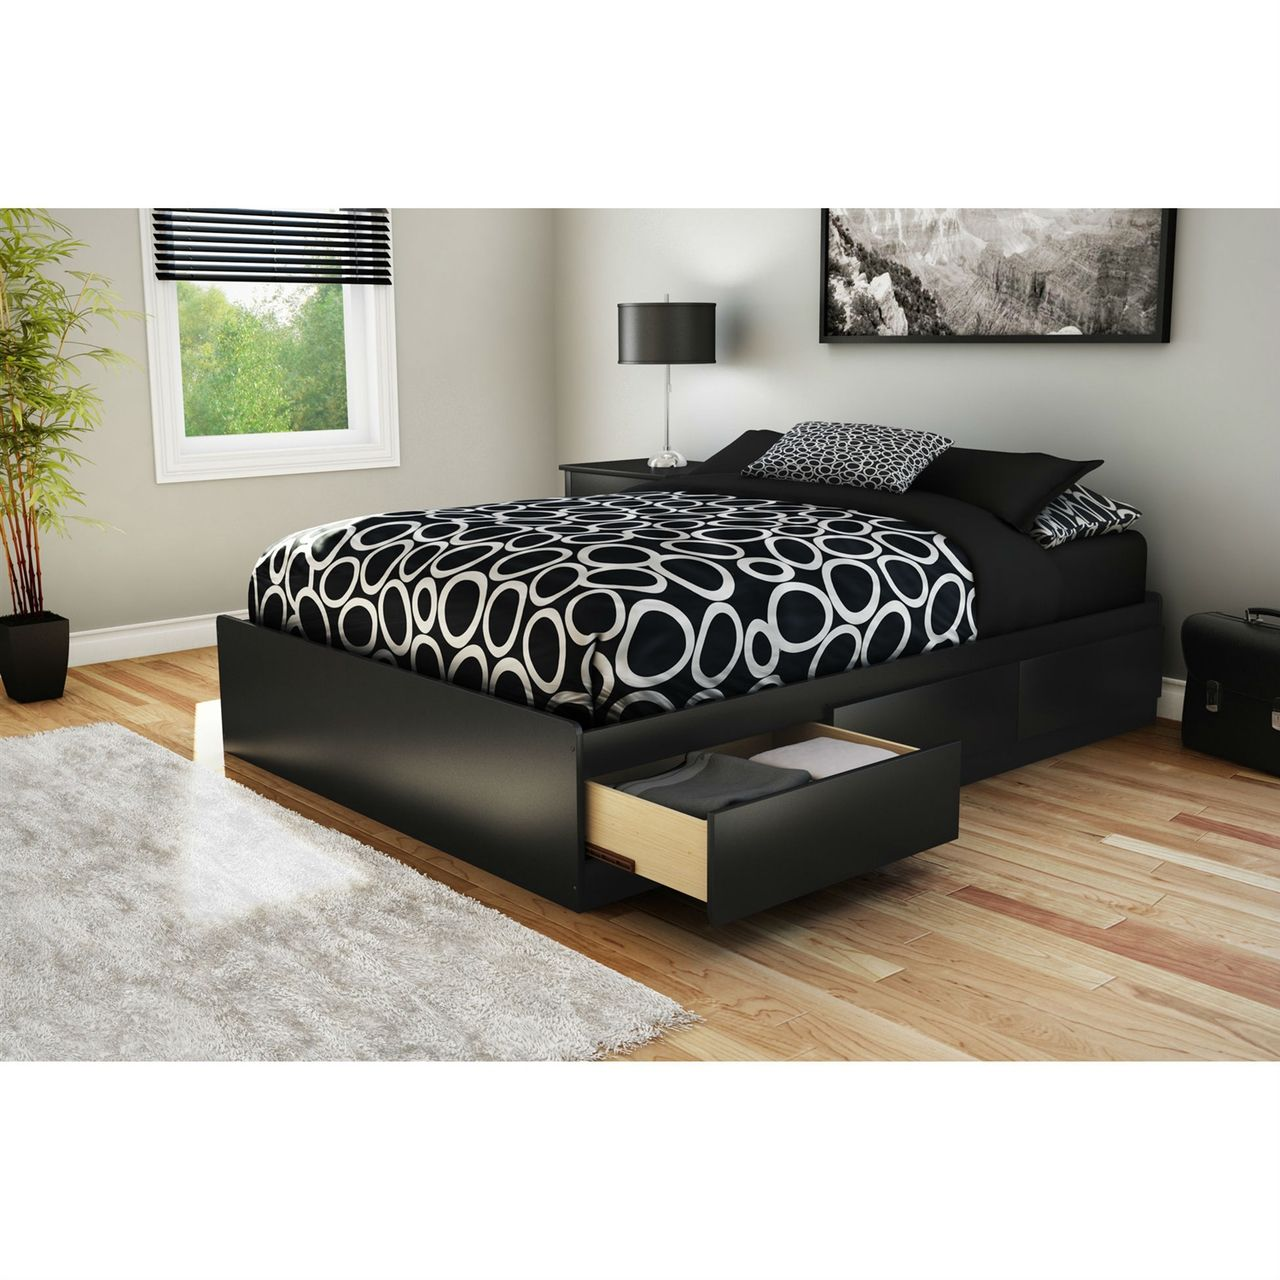 Full Modern Platform Bed With 3 Storage Drawers In Black Full Size Storage Bed Full Platform Bed Full Bed With Storage